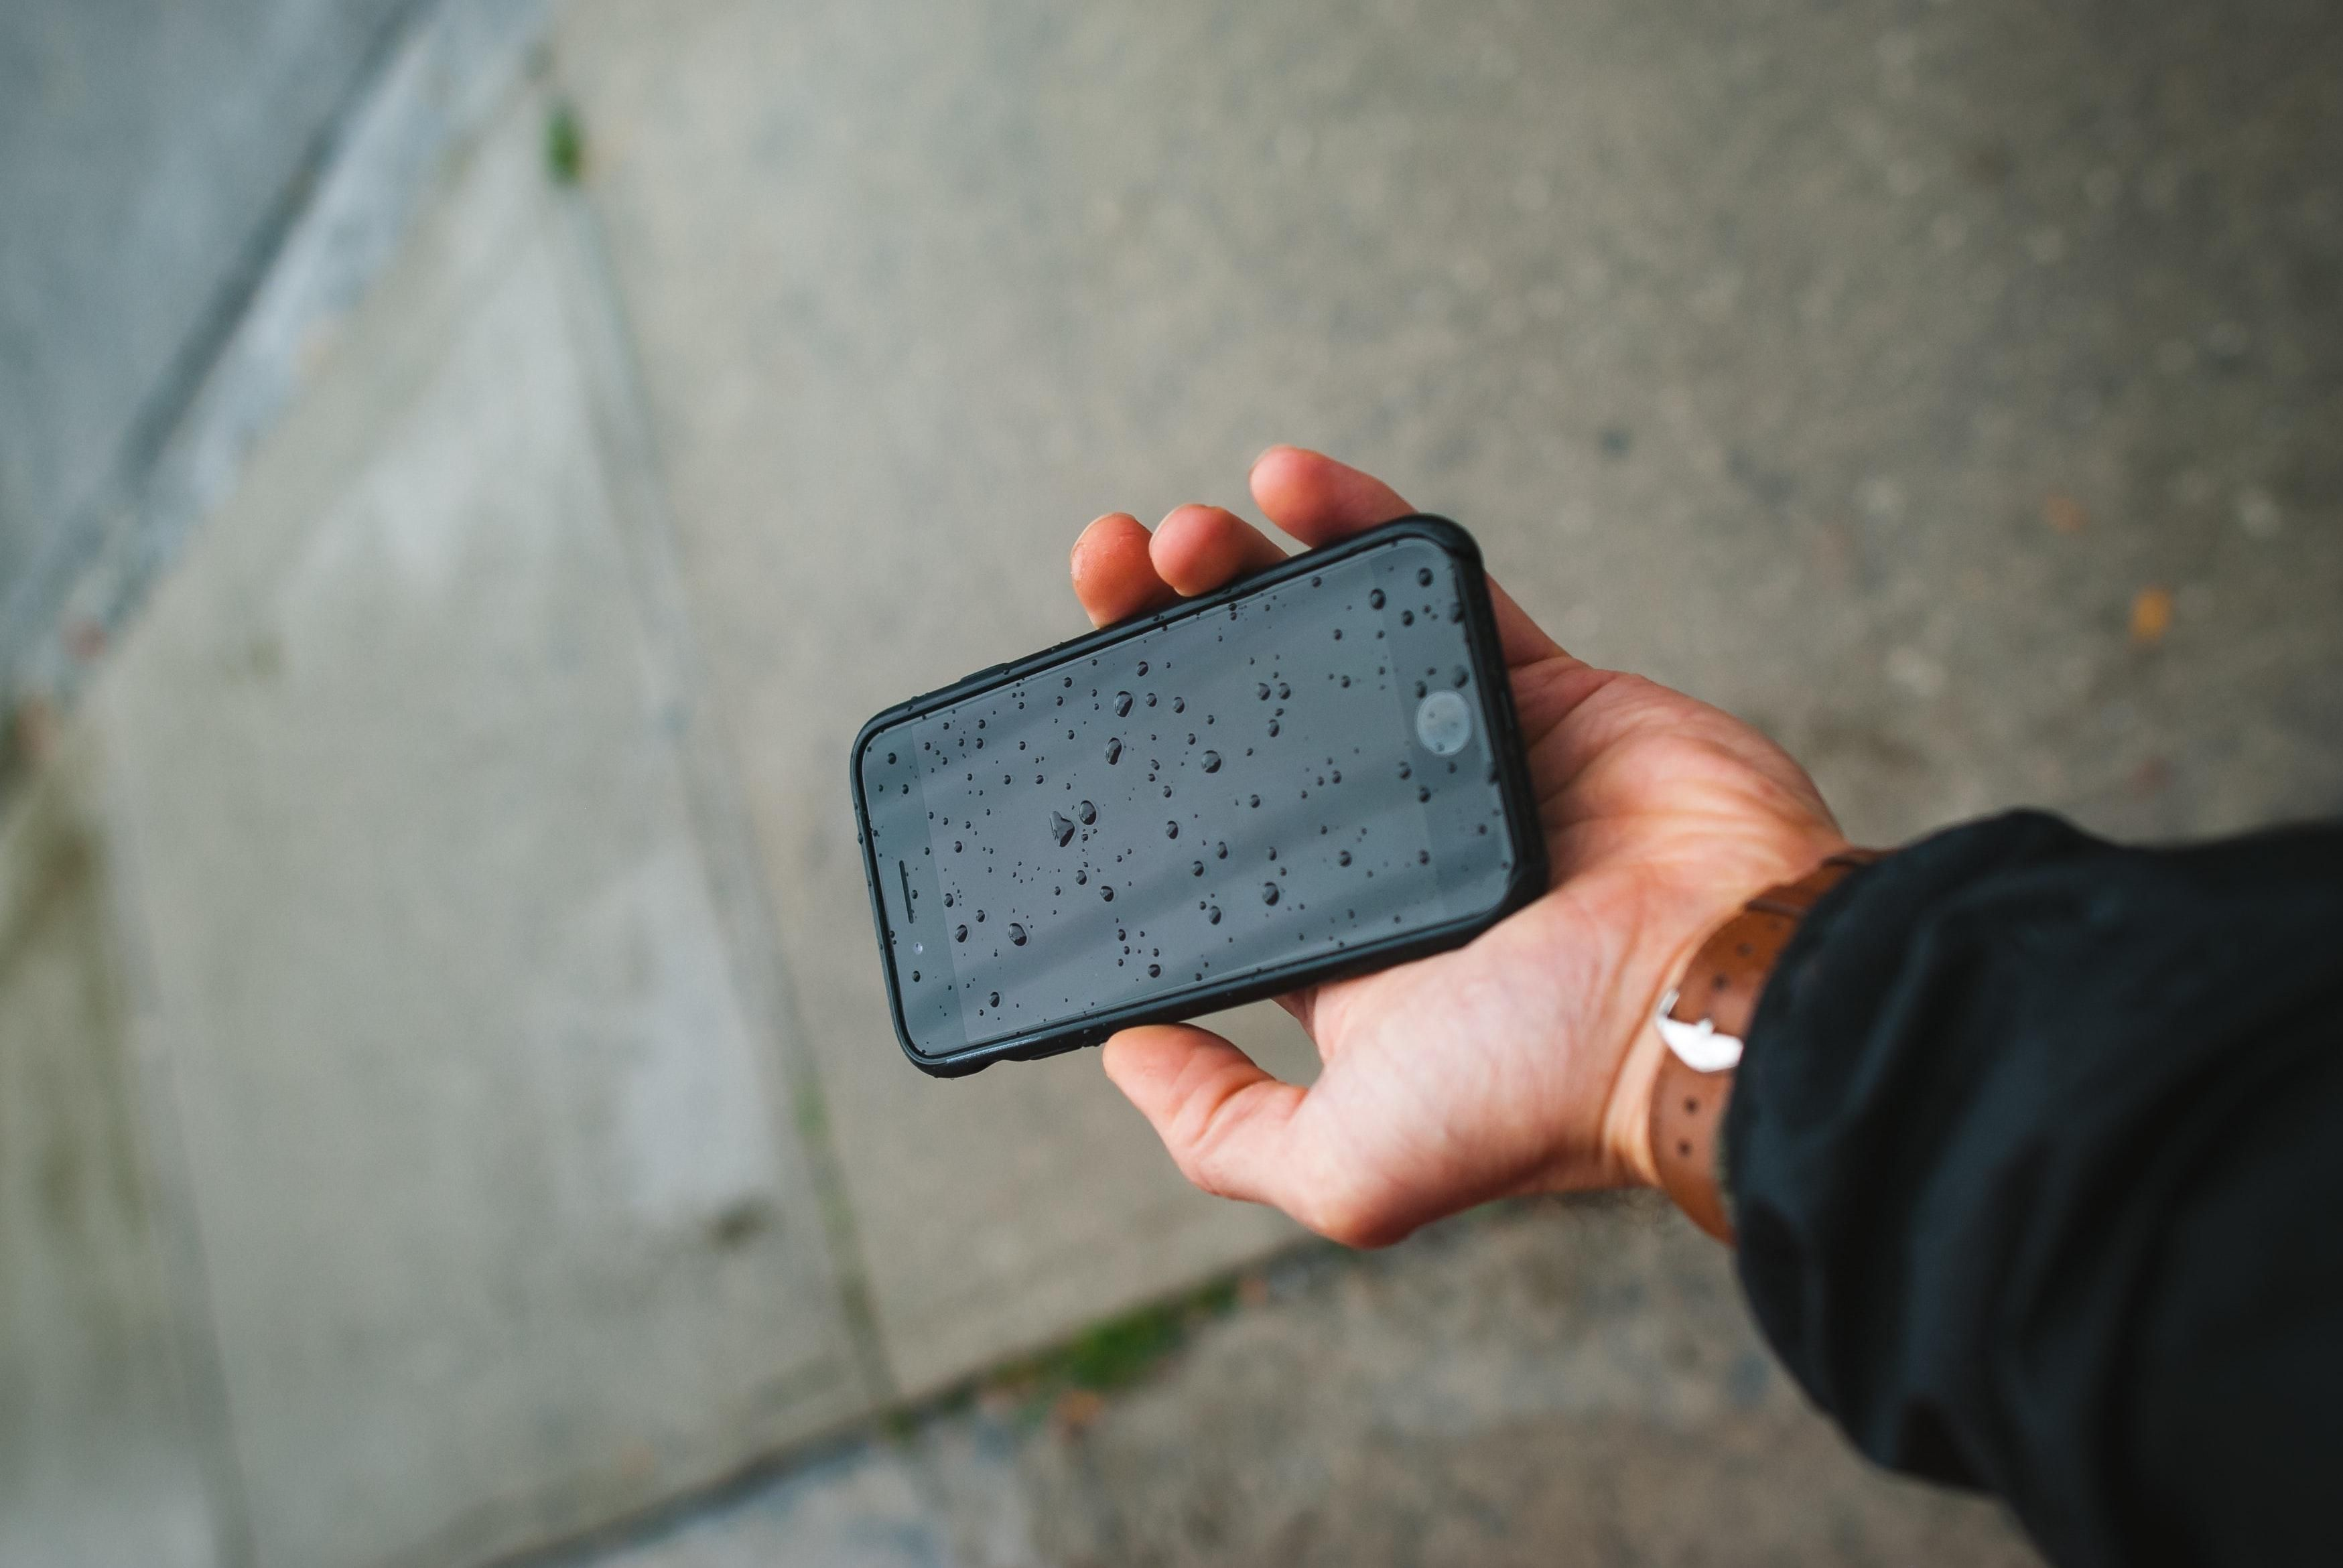 Why Rice Isn't The Best Way To Save Your Soggy Phone